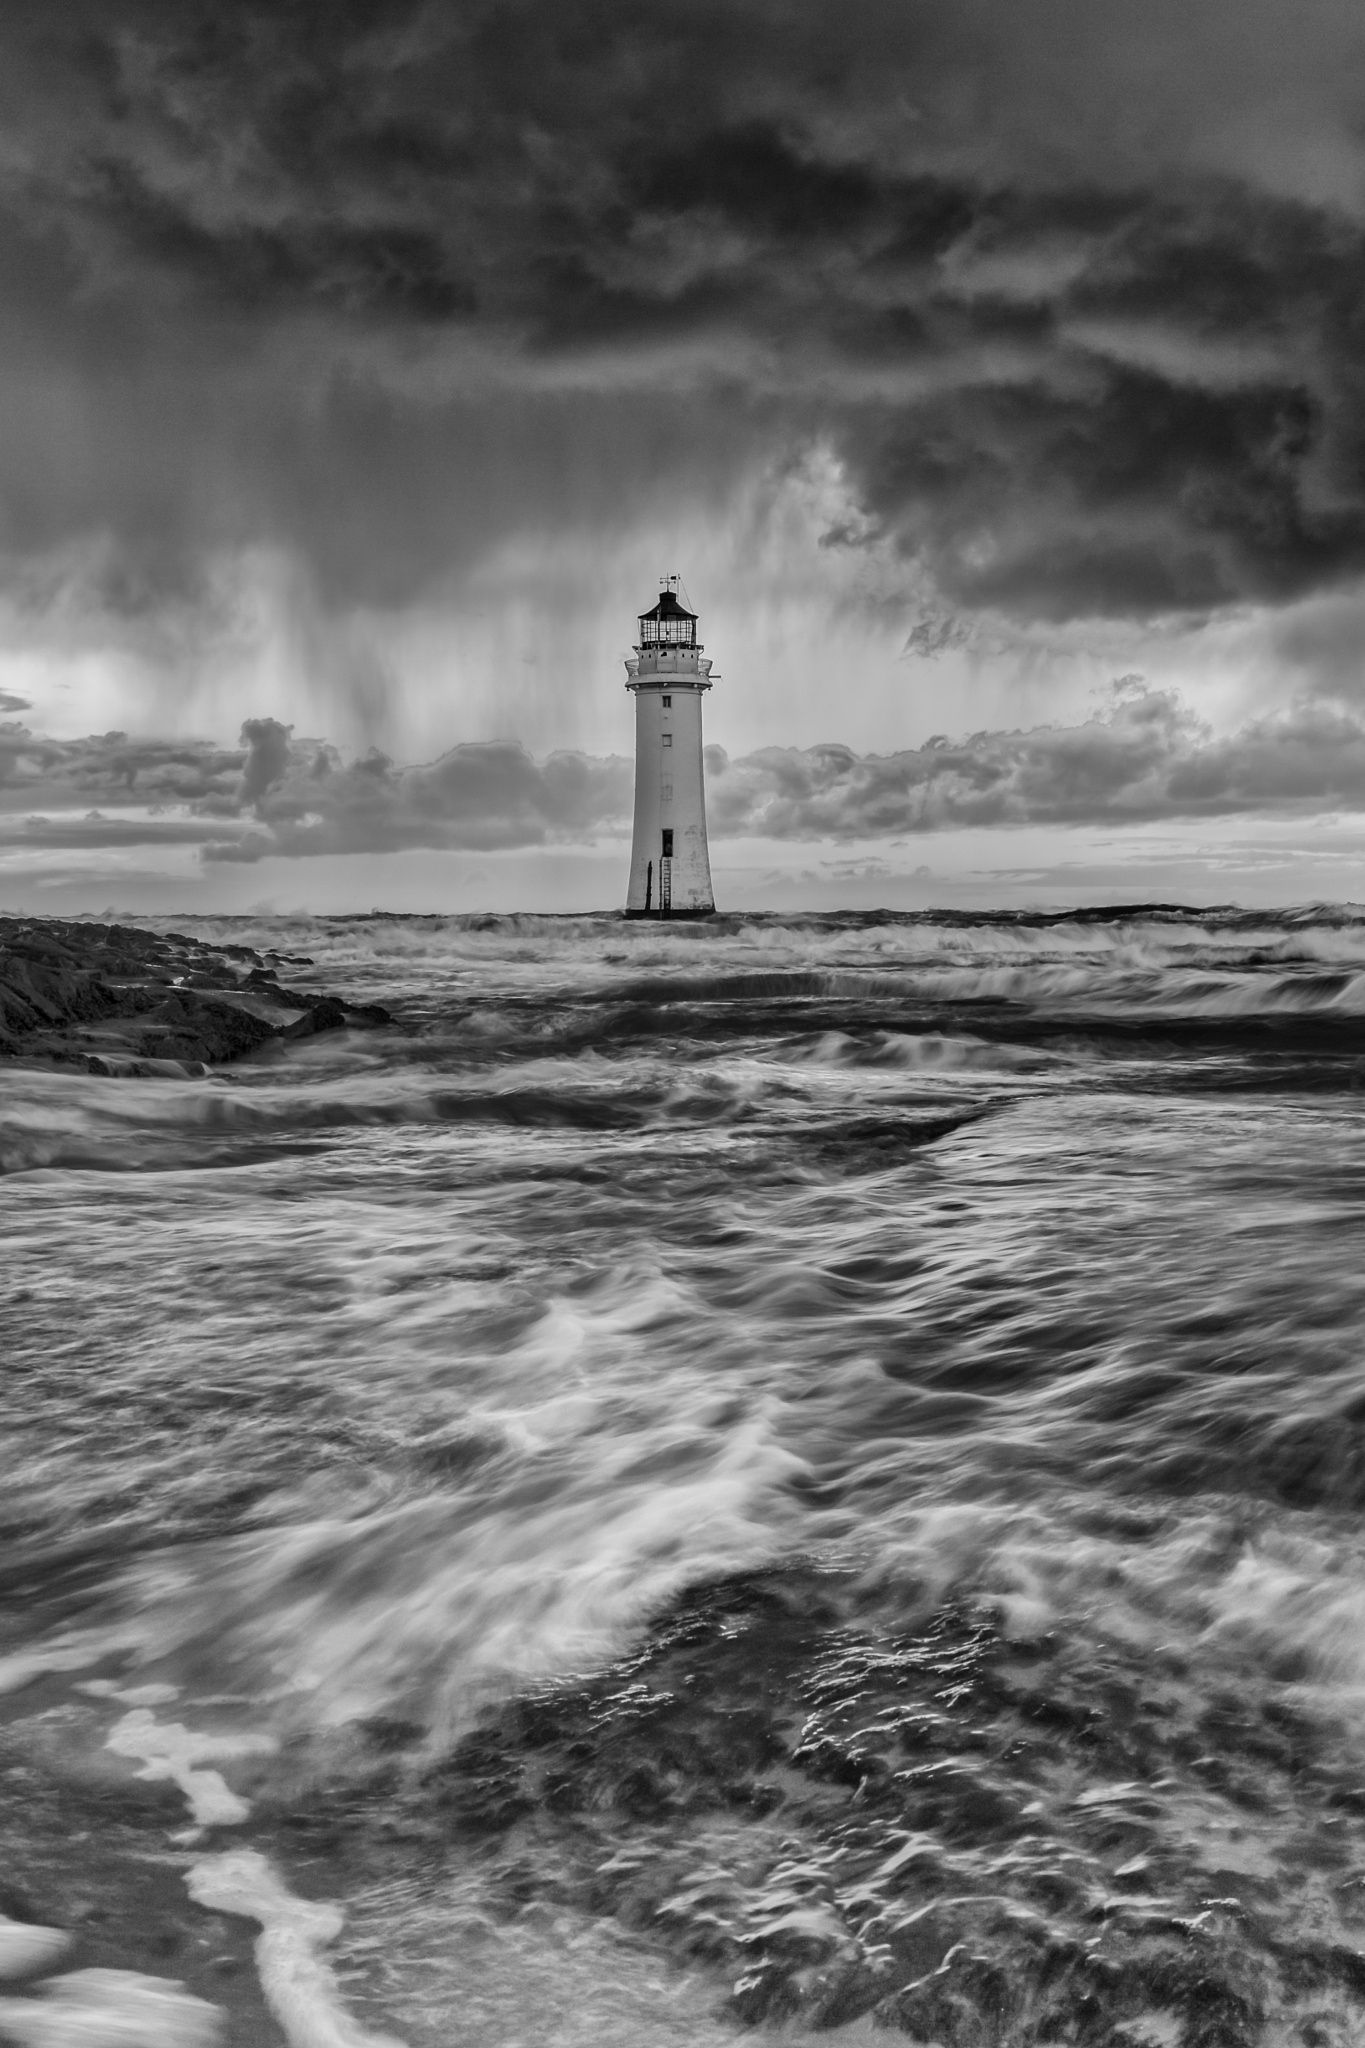 Tempestuous - Storm clouds rolling in from the Irish Sea over New Brighton lighthouse. #irishsea Tempestuous - Storm clouds rolling in from the Irish Sea over New Brighton lighthouse. #irishsea